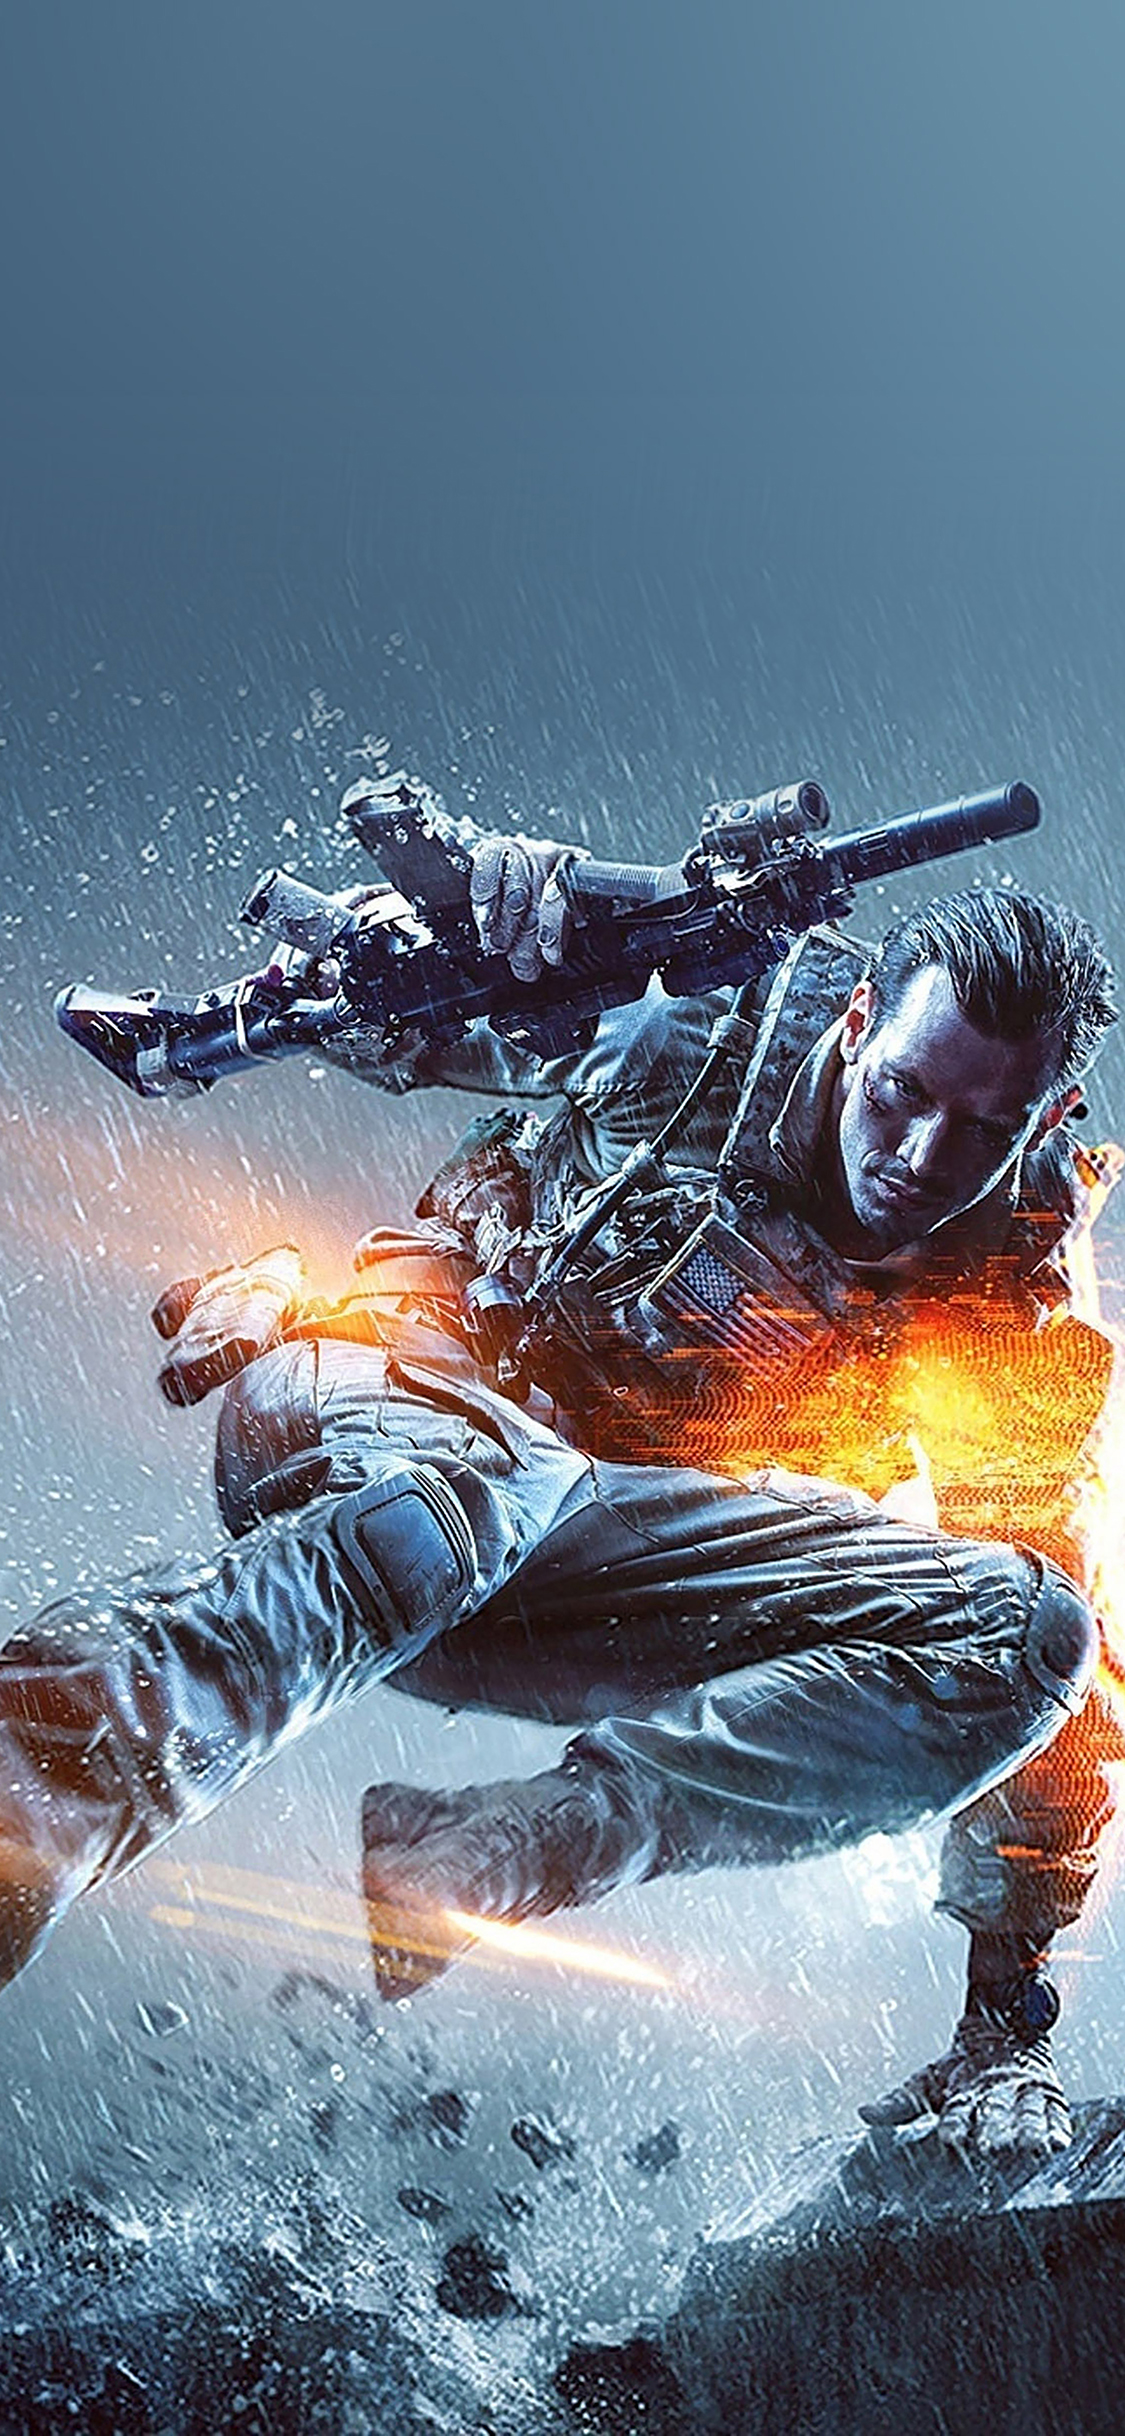 iPhoneXpapers.com-Apple-iPhone-wallpaper-aa92-wallpaper-battlefield-4-jump-game